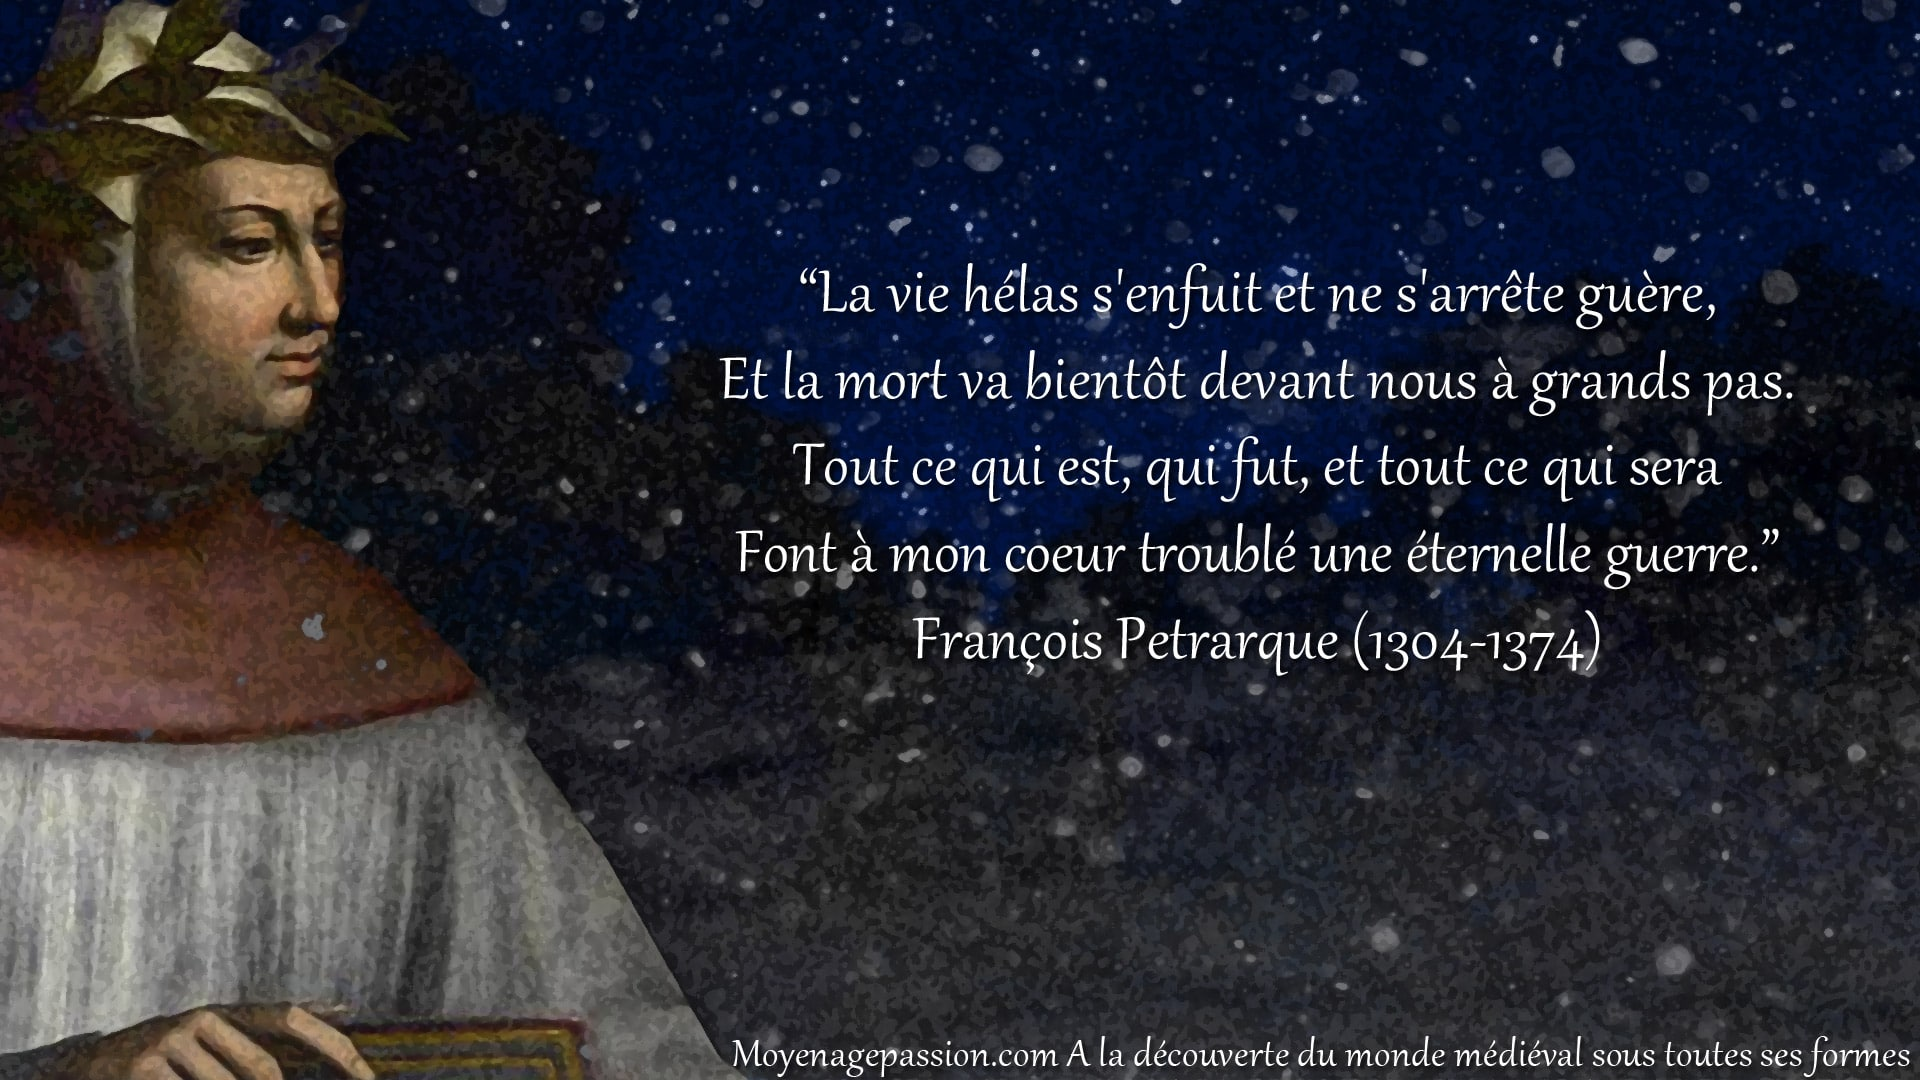 petrarque_citations_extraits_poesie_moyen-age_notes_blues